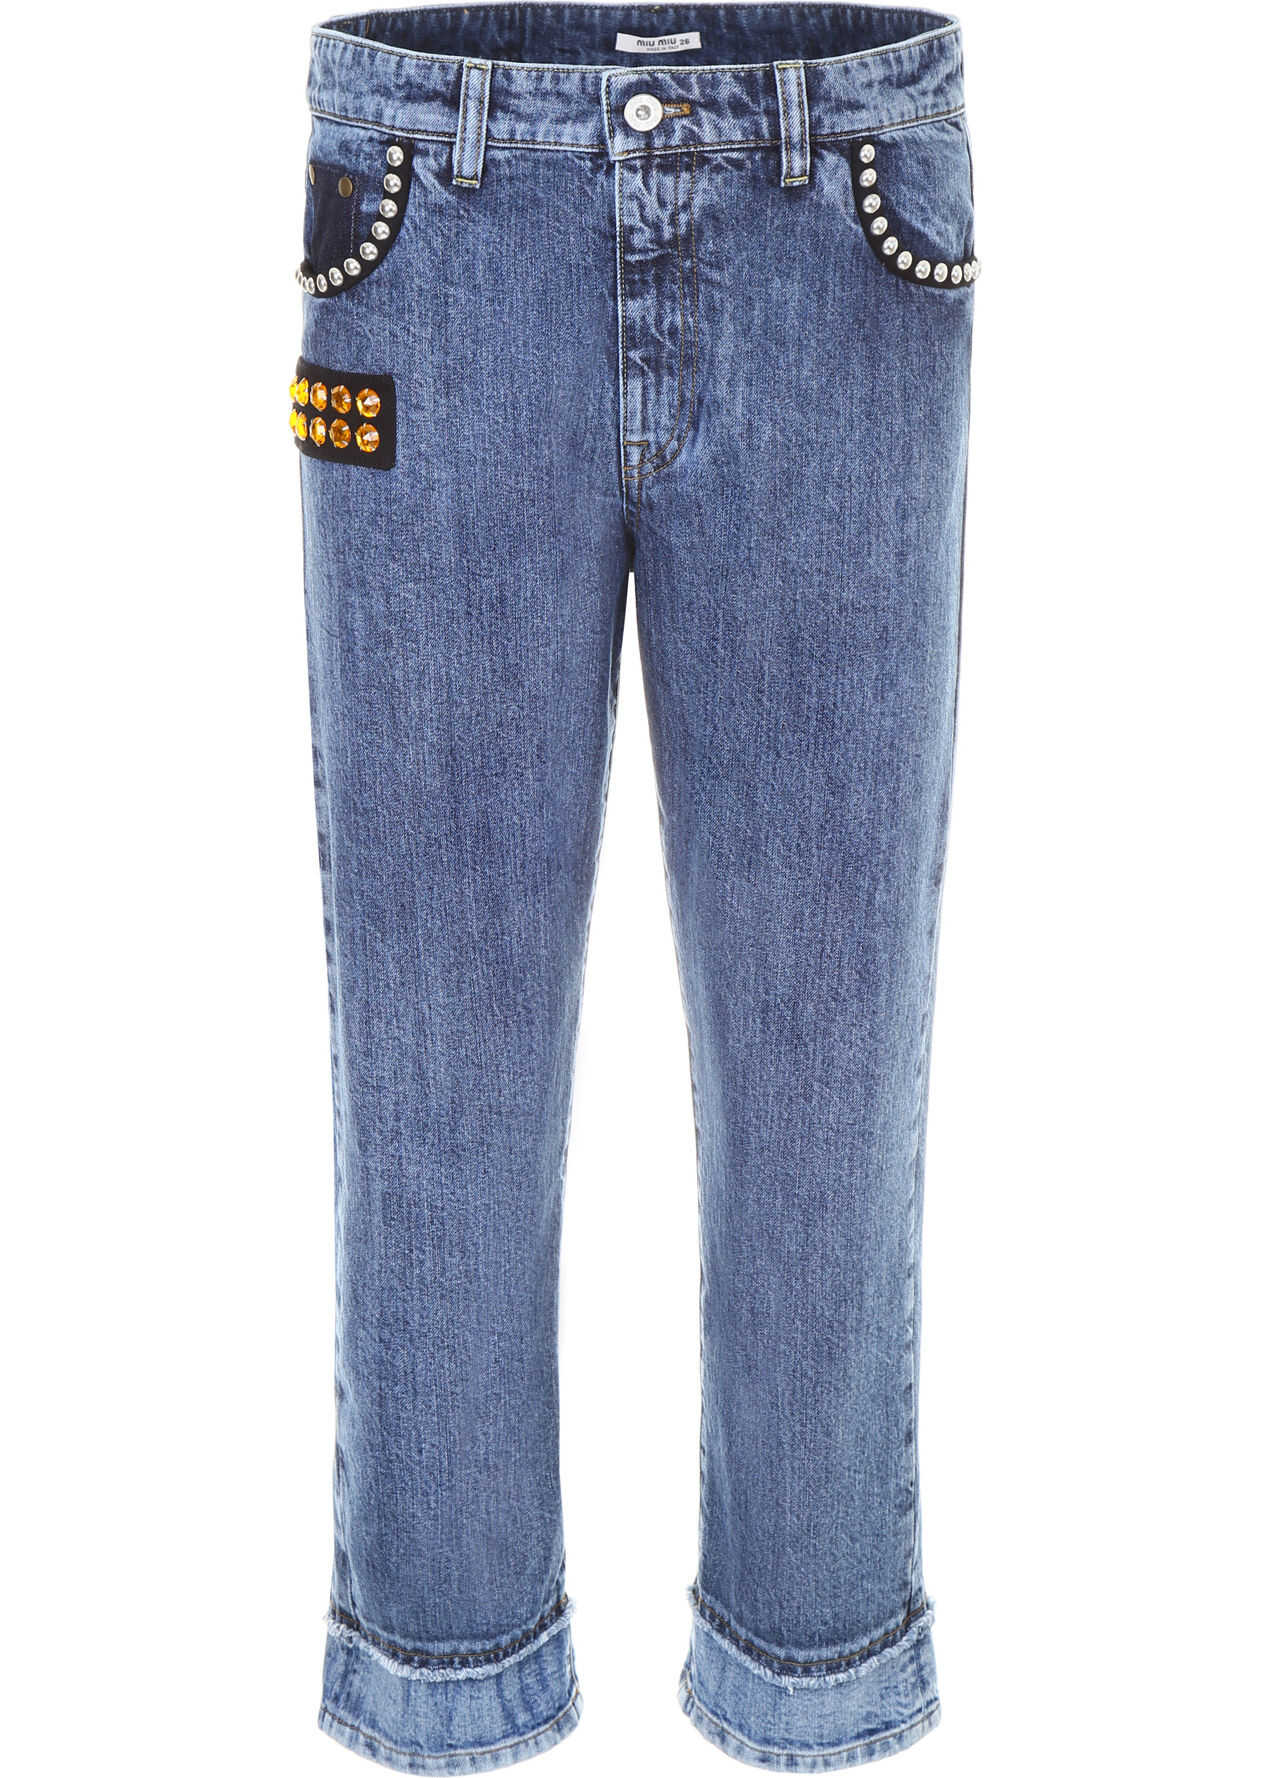 Jeans With Crystals And Studs